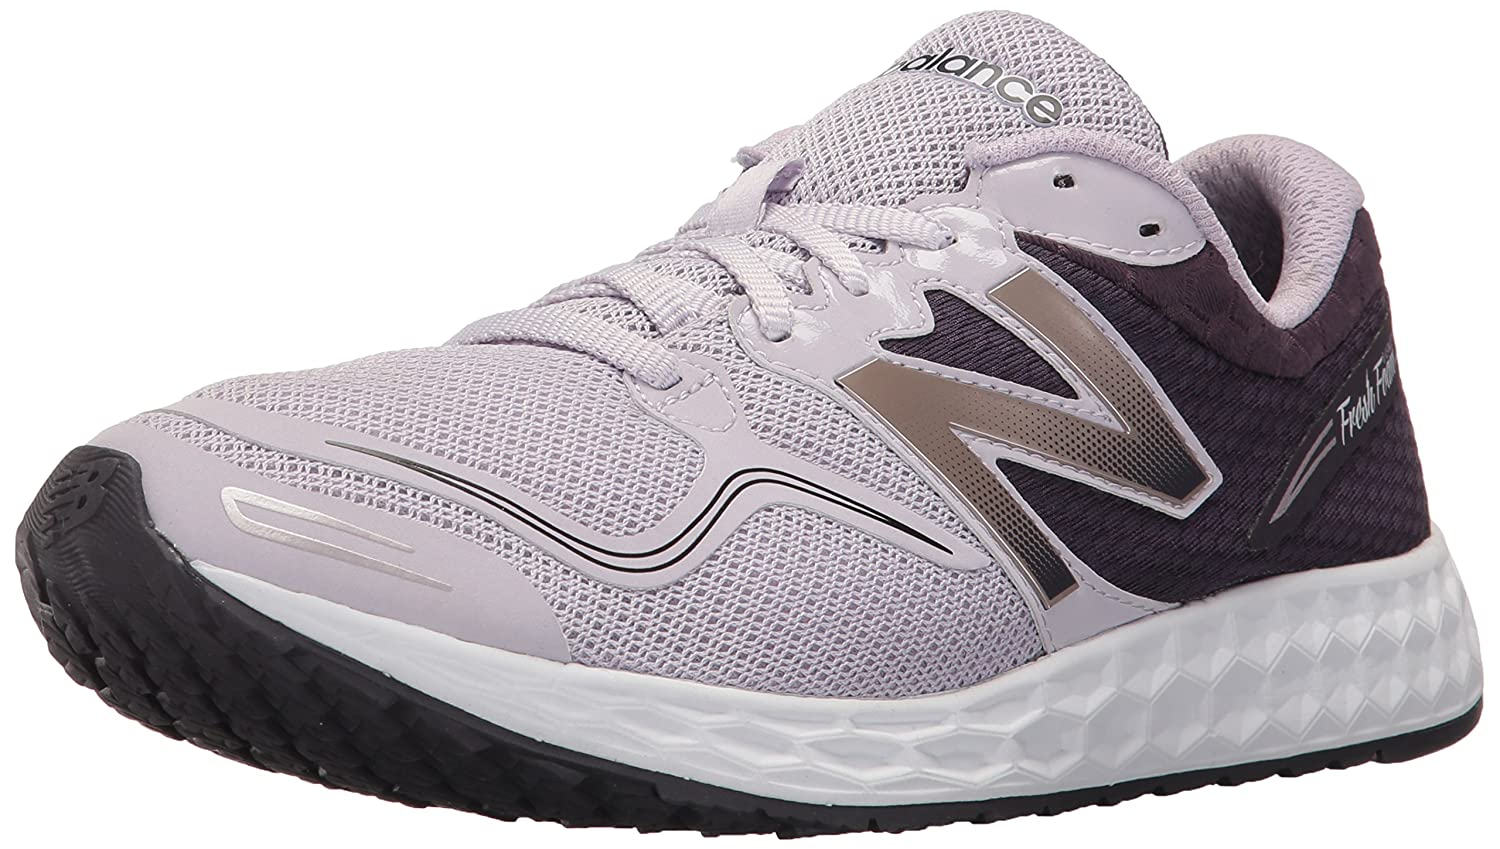 New Balance Women's B01N458F5M Veniz V1 Running Shoe B01N458F5M Women's 10 D US|Elderberry/Thistle 87e817